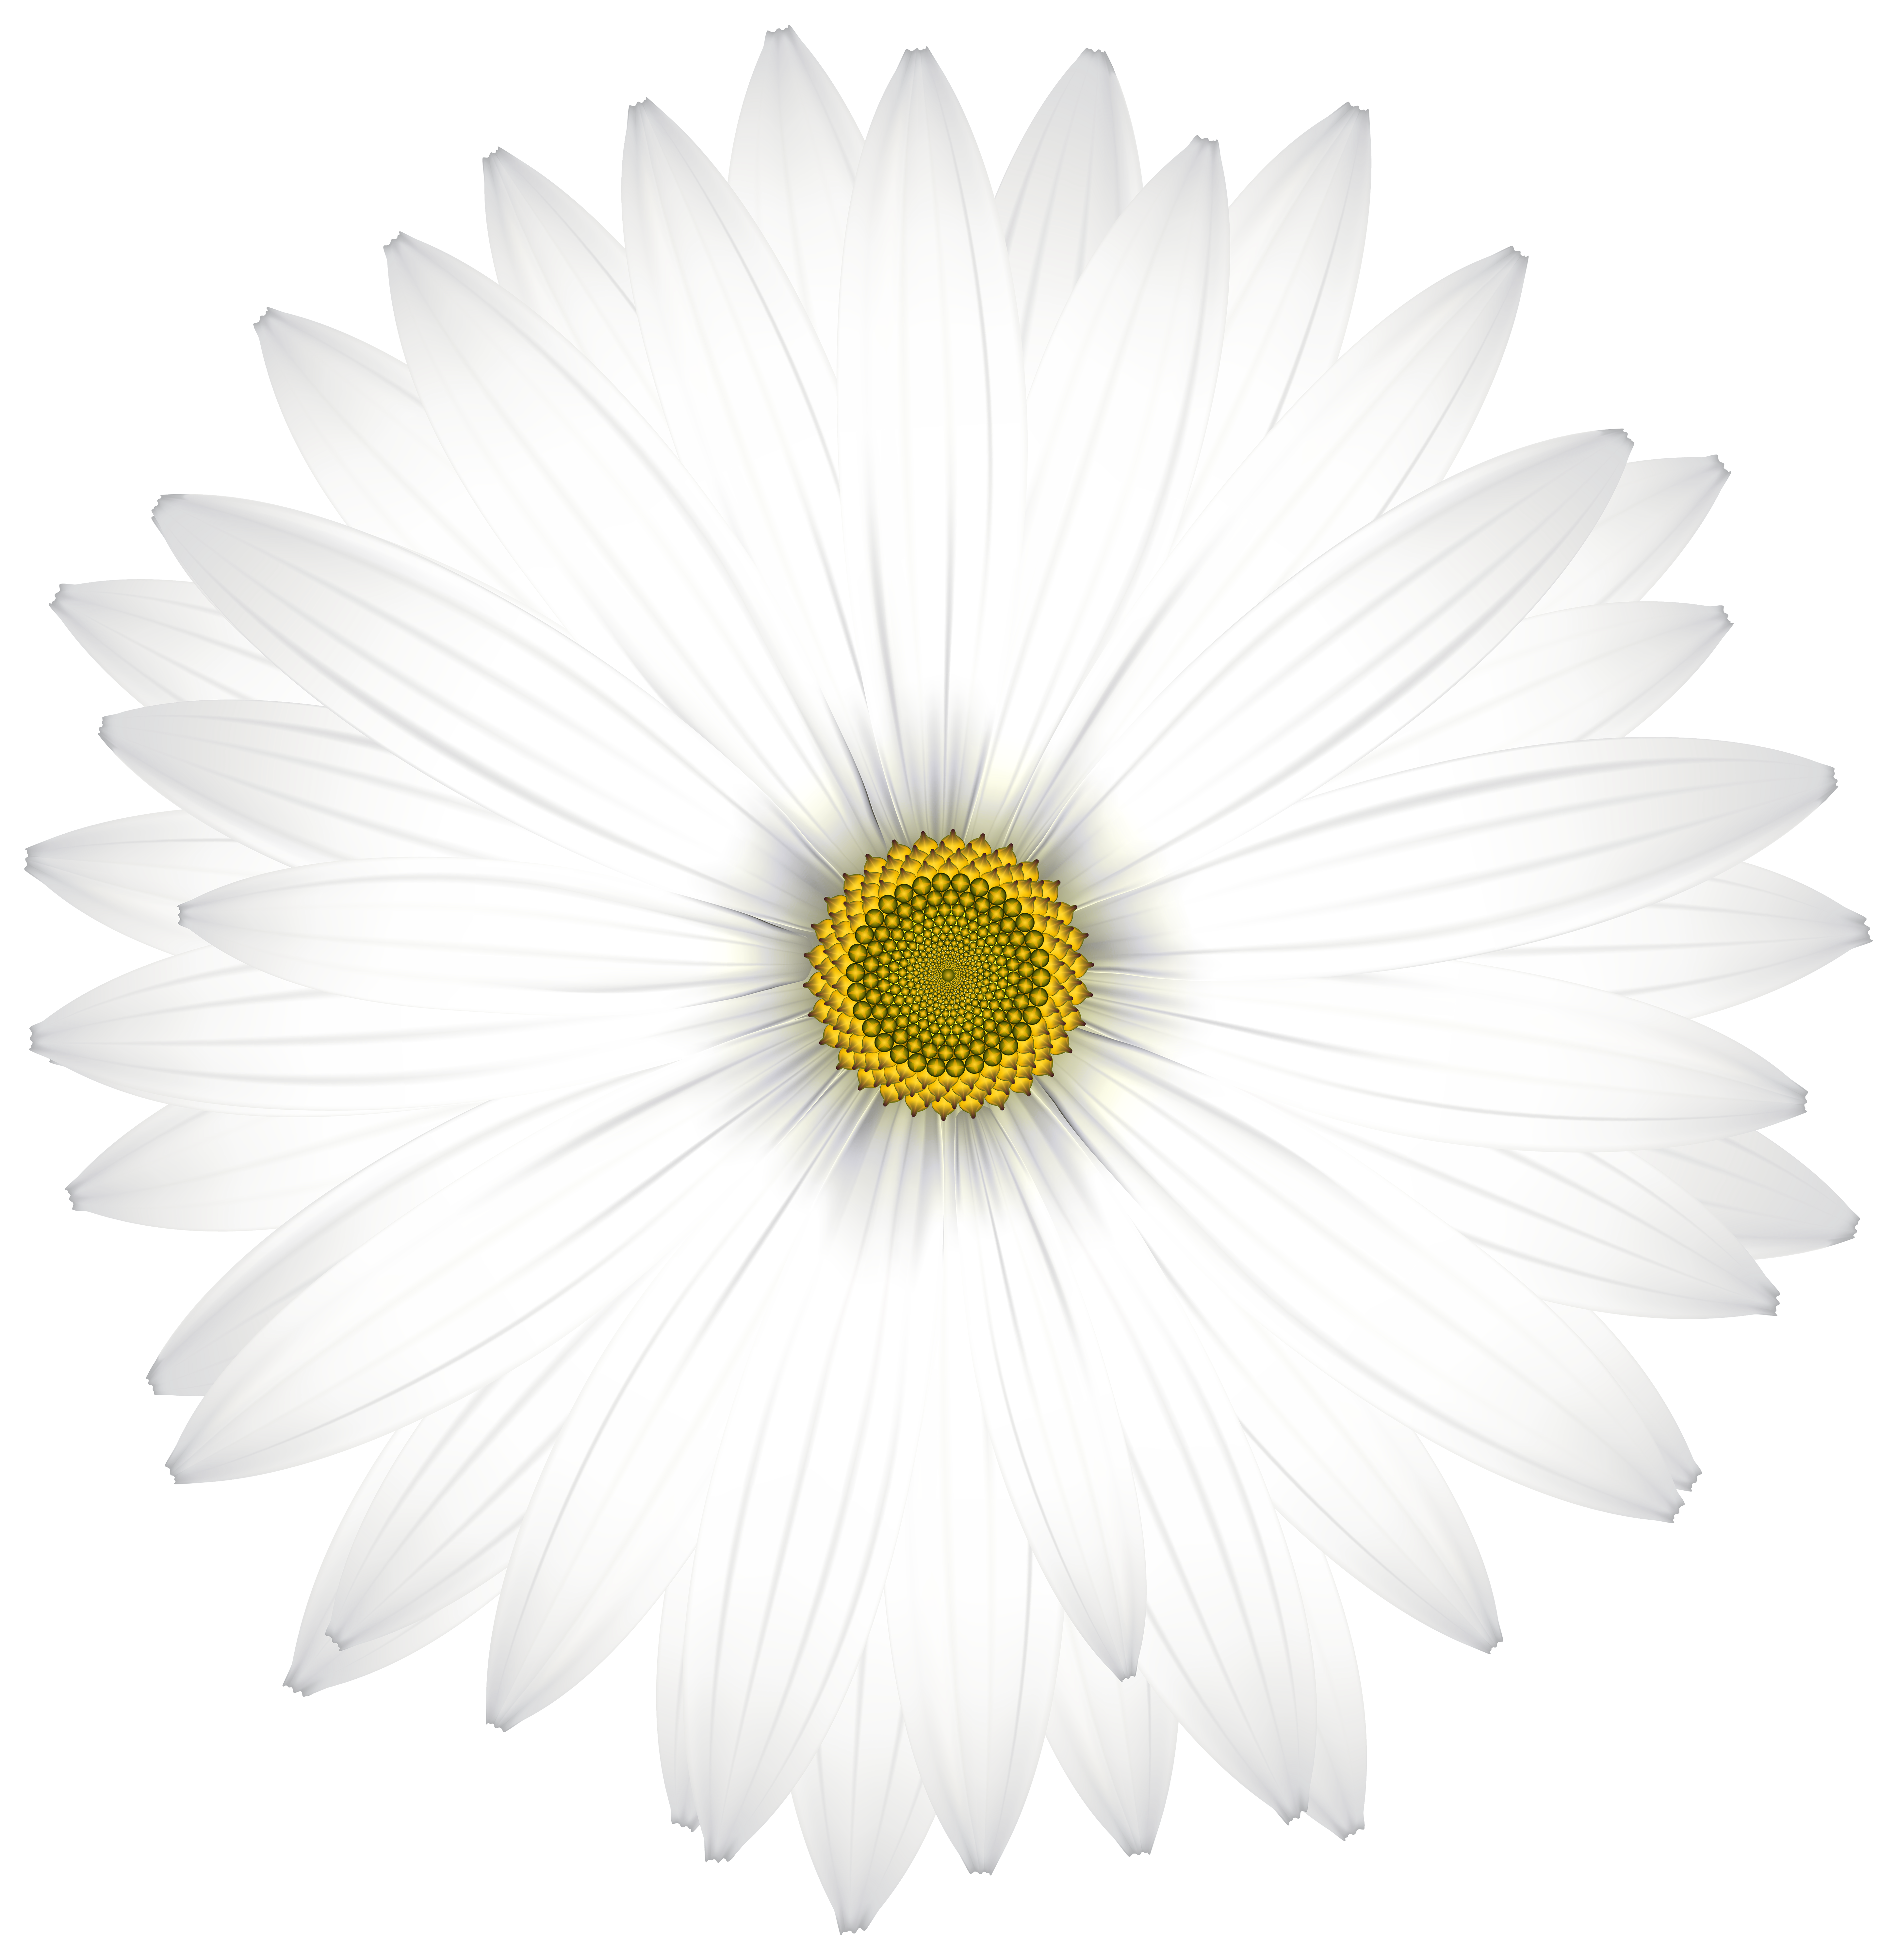 Delicate flower clipart vector black and white library Delicate White Daisy Transparent PNG Clip Art Image   Gallery ... vector black and white library